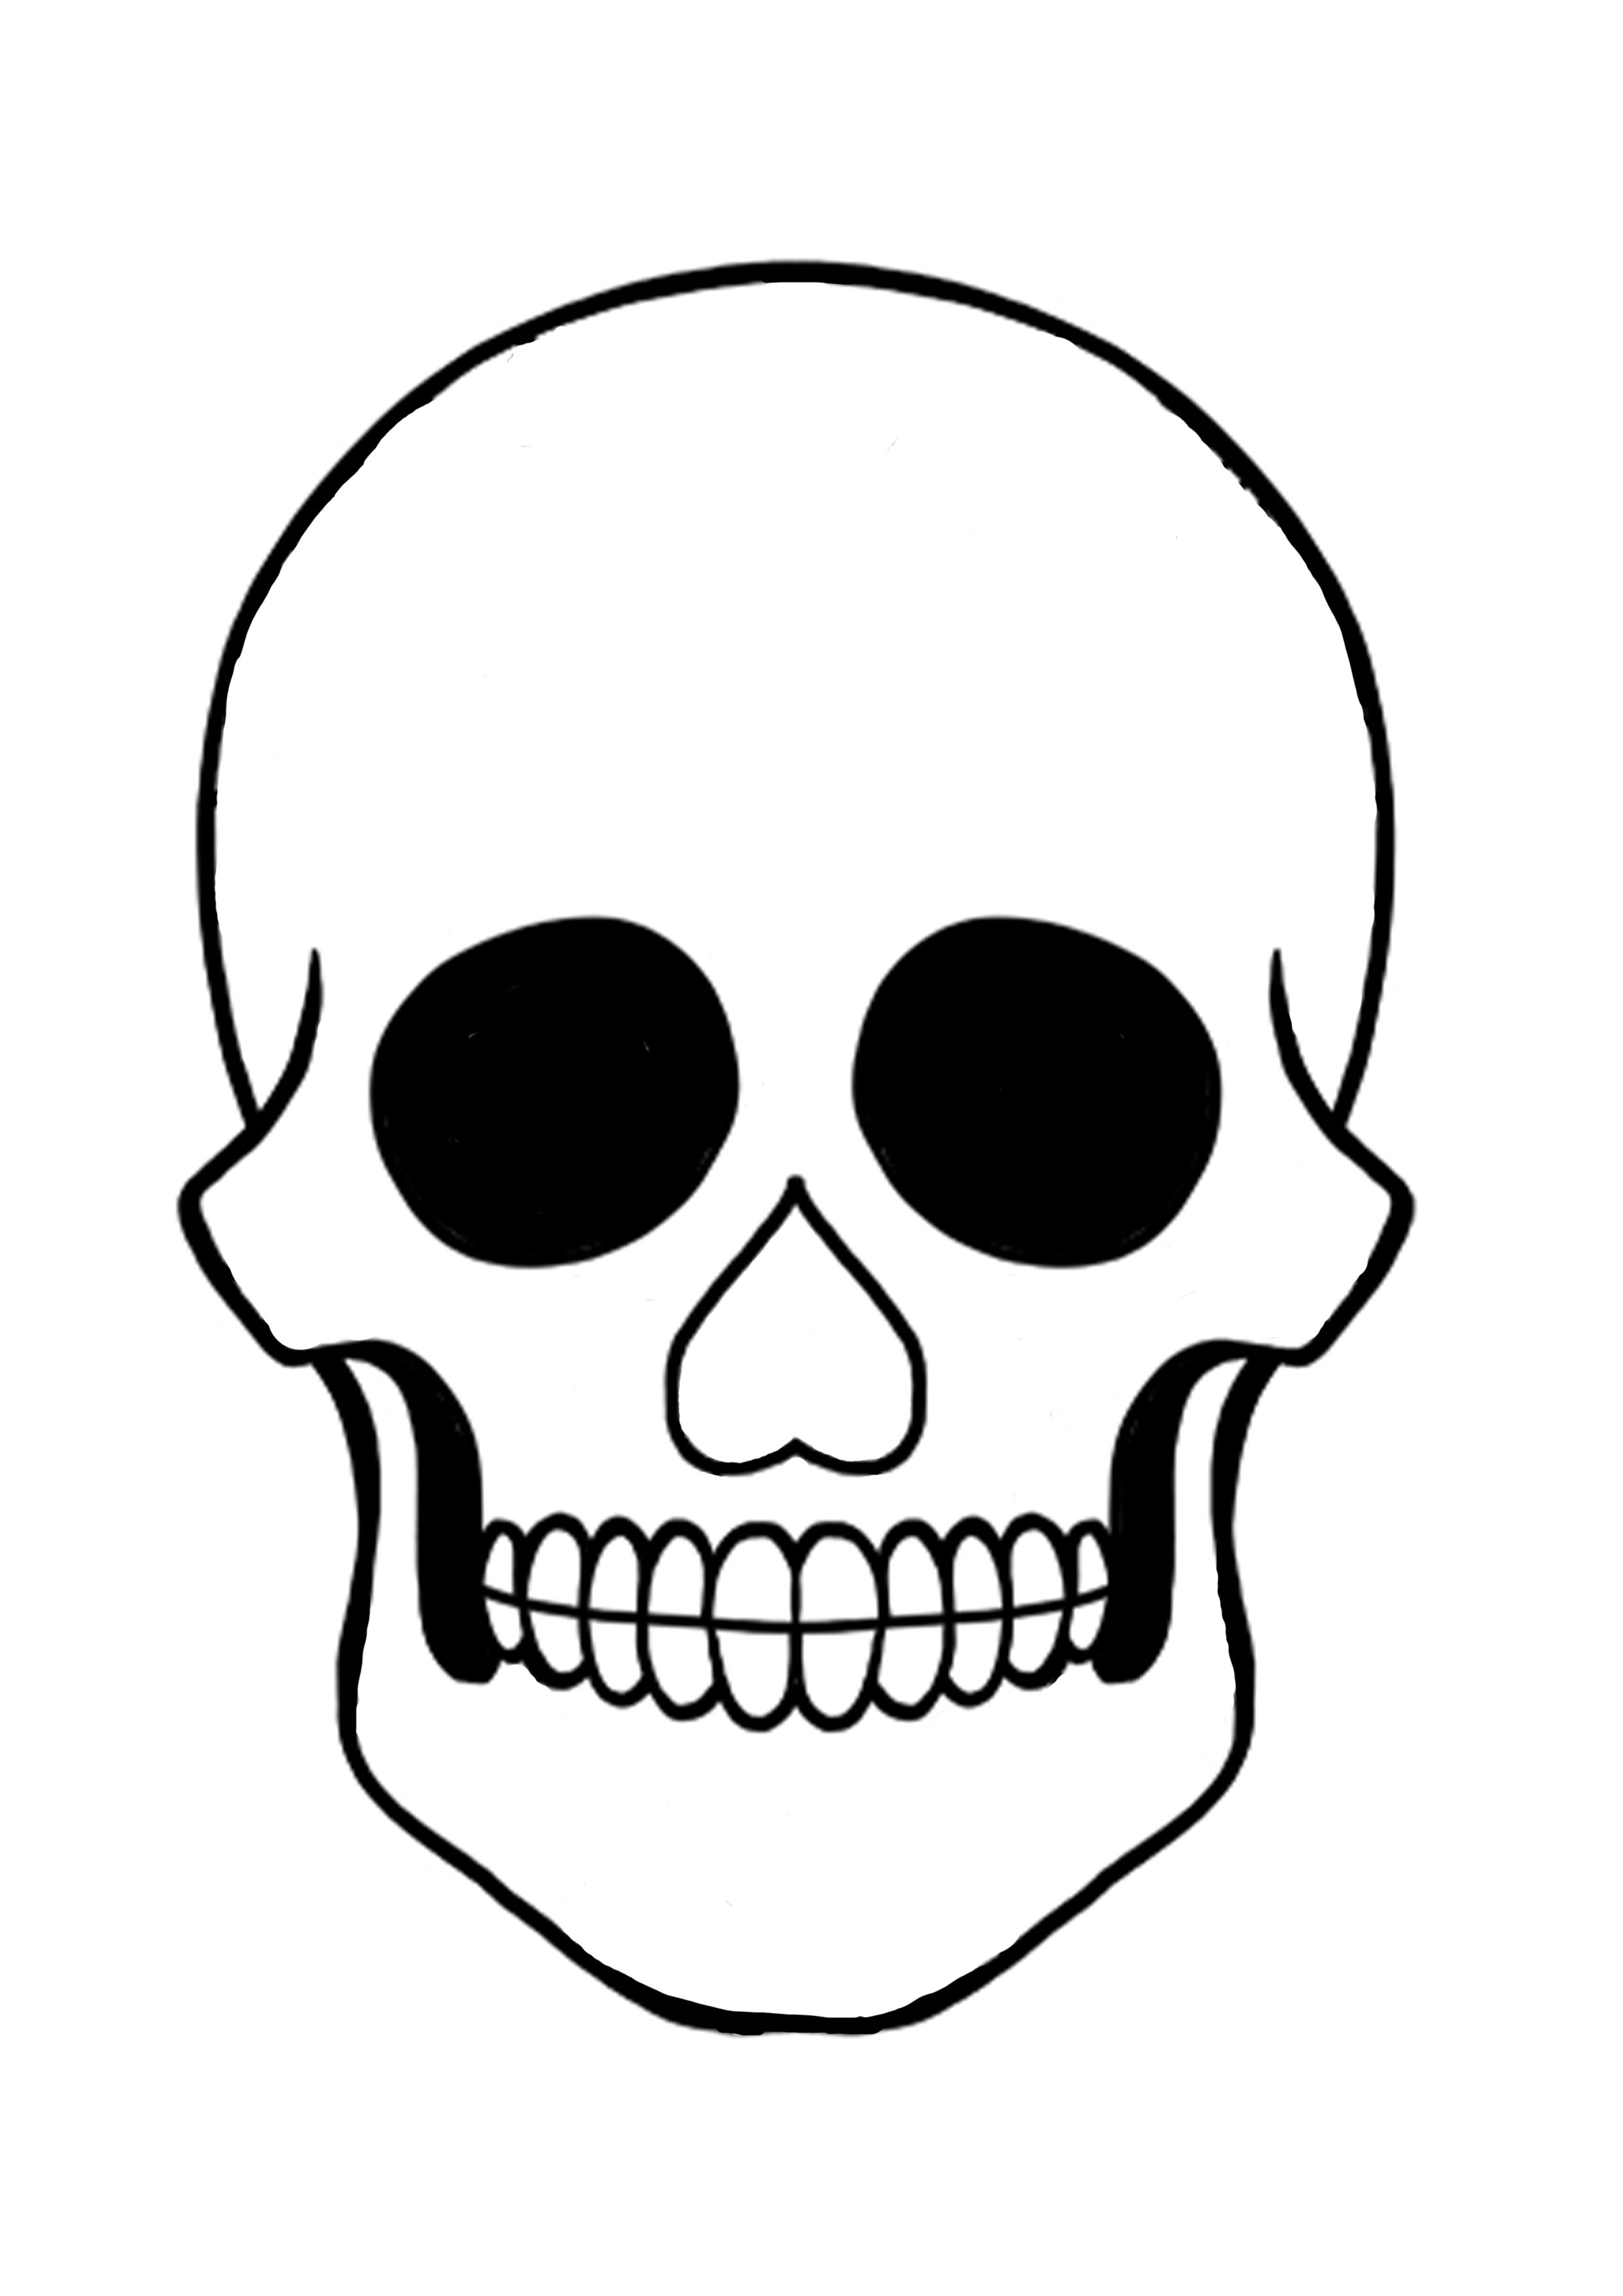 day of the dead skull outline fill in your skull with colours and flowers in celebration of skull the outline day dead